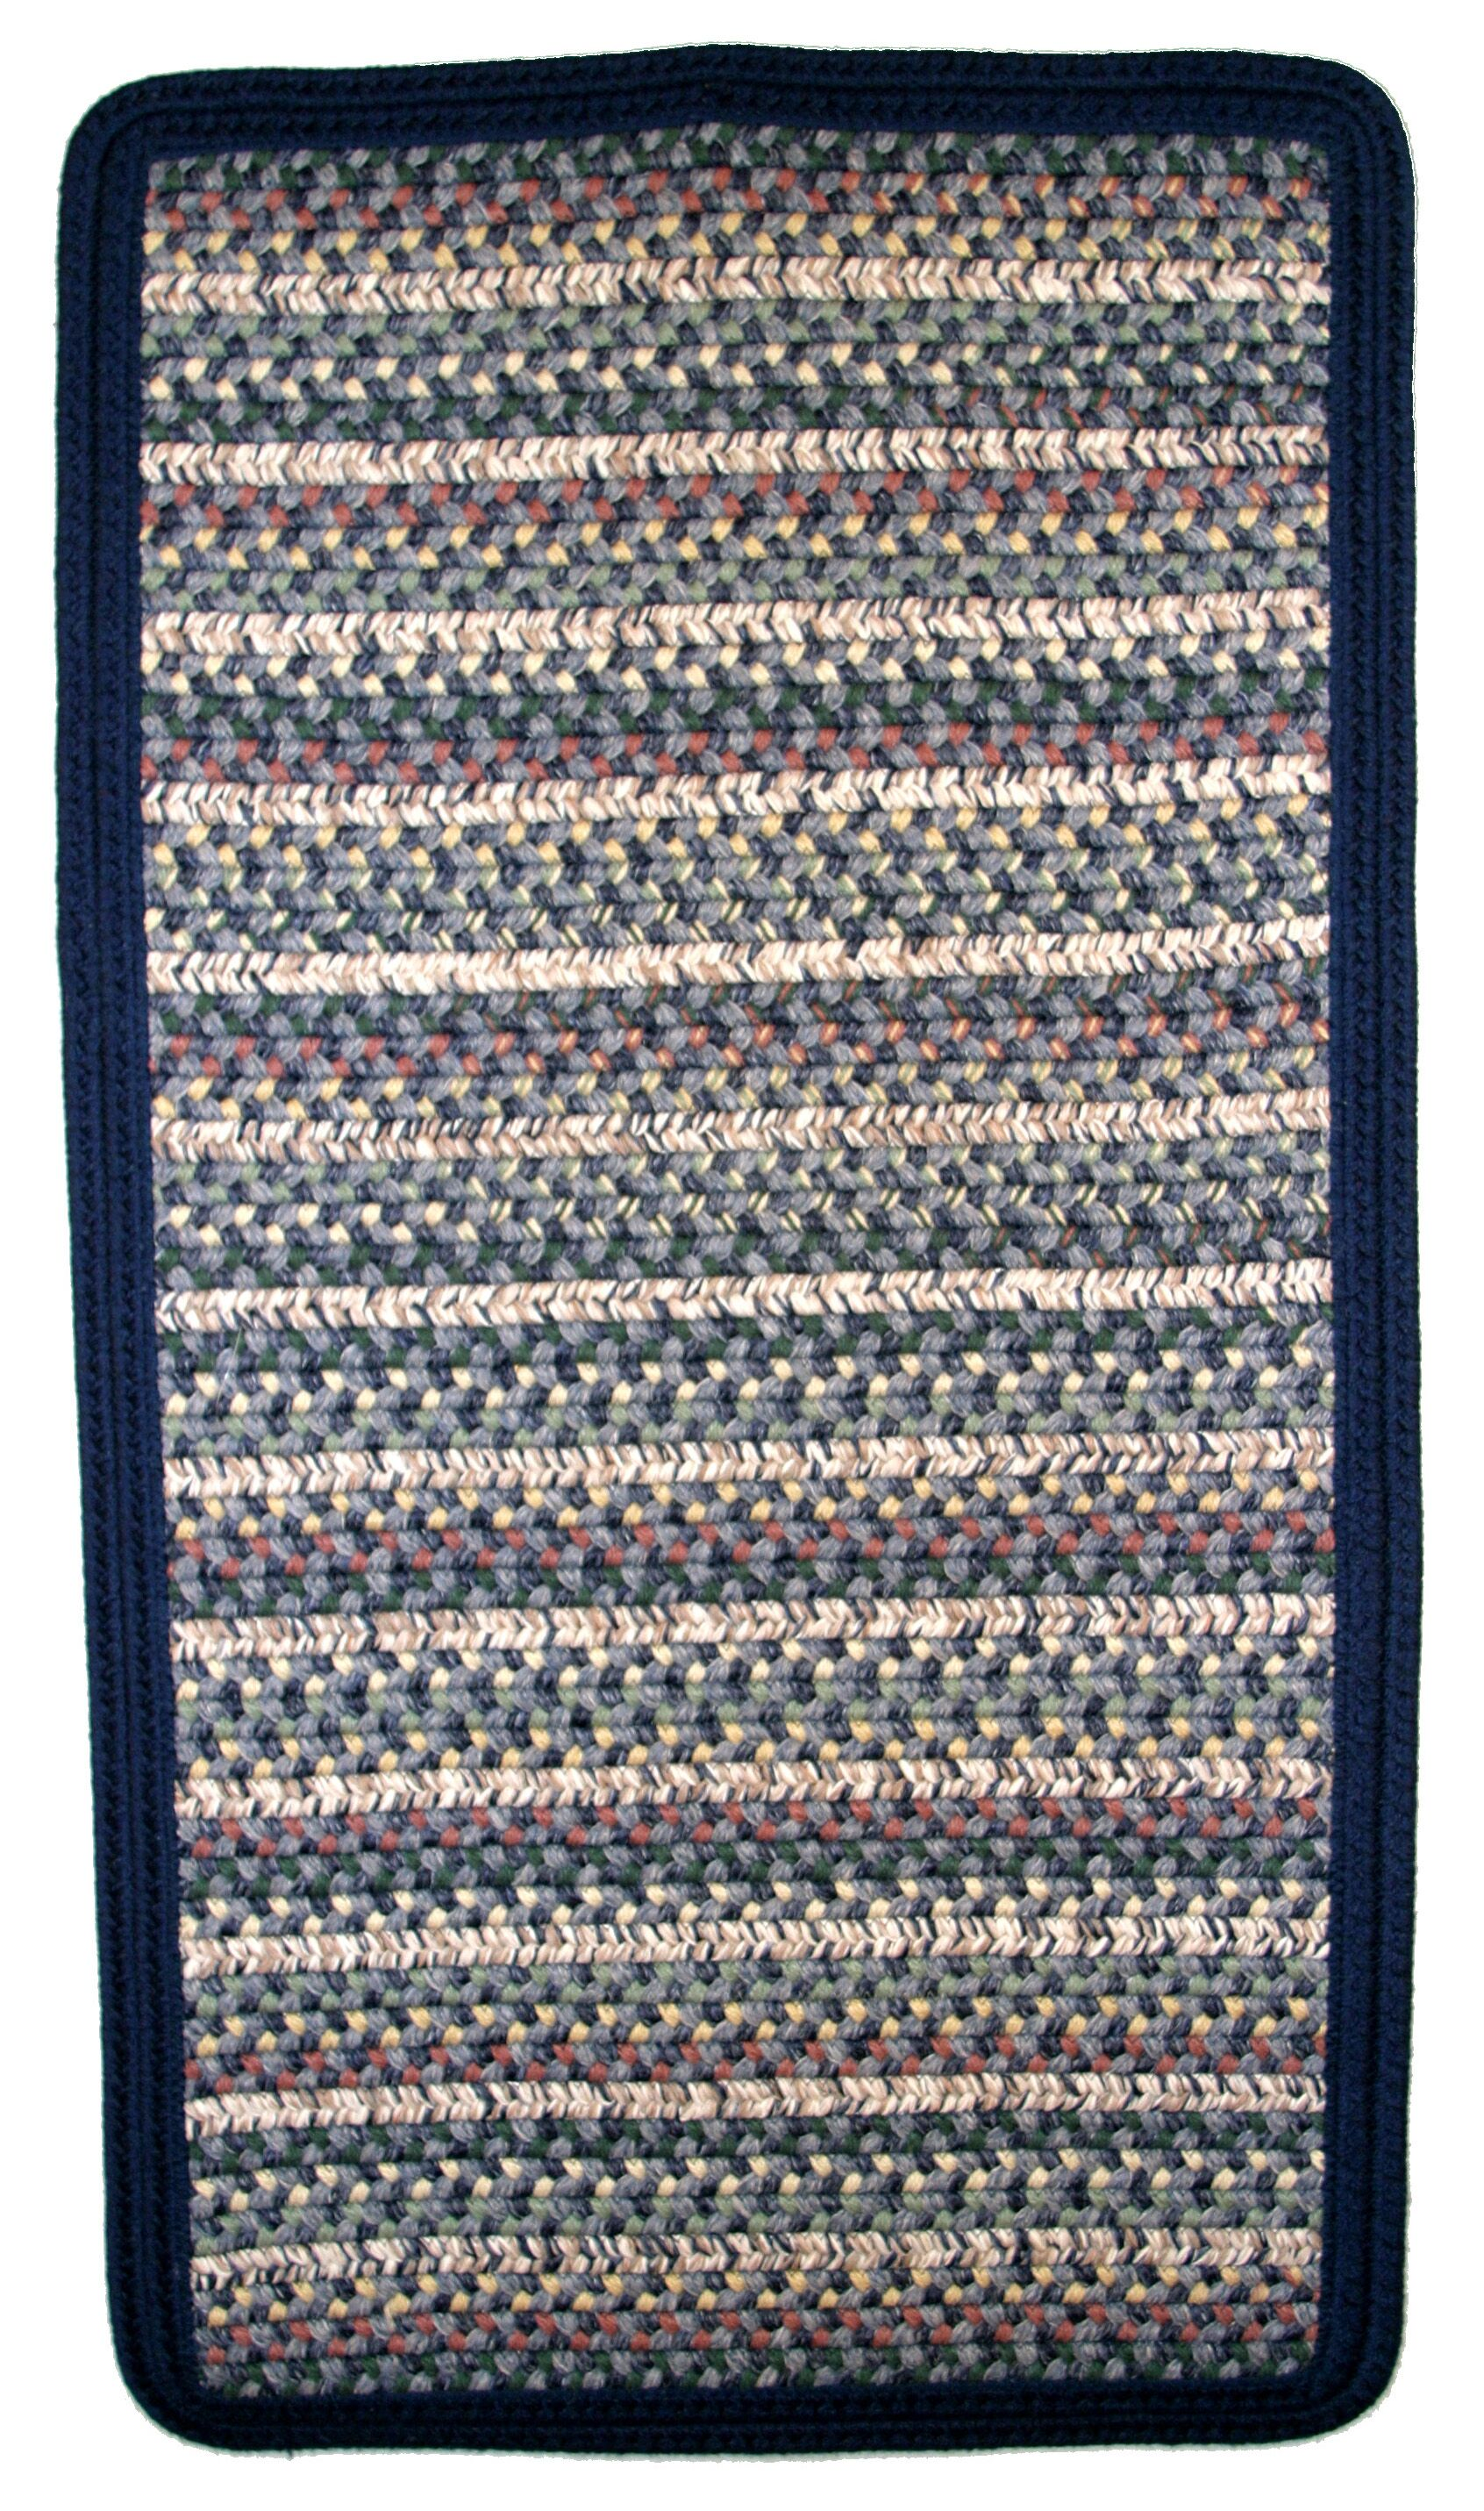 Beantown Boston Harbor Blue/Green Area Rug Rug Size: Square 8'